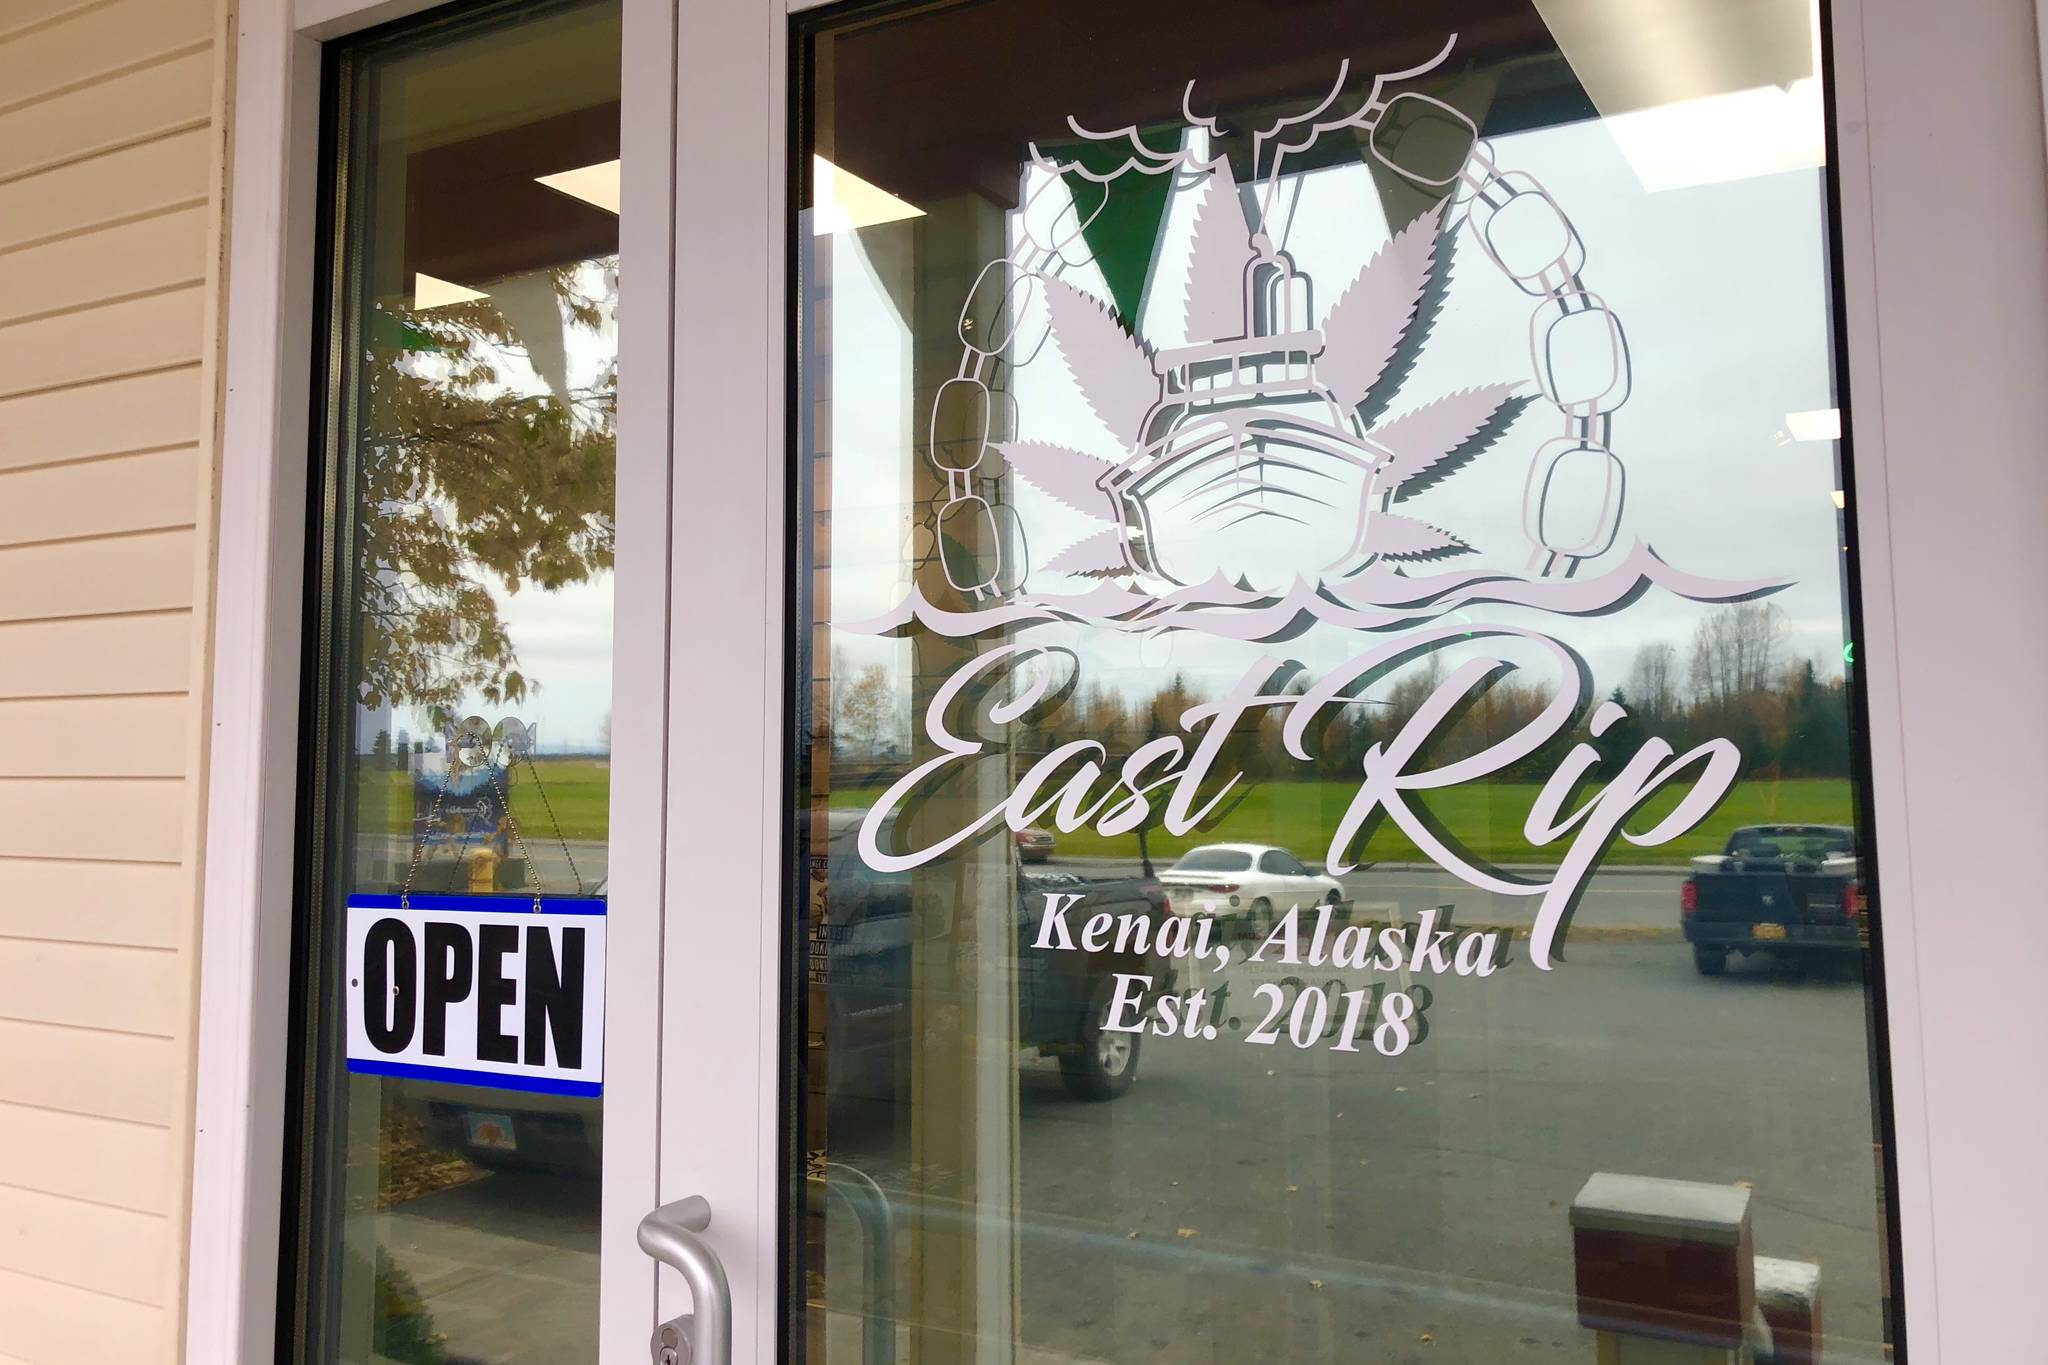 East Rip, a new Kenai marijuana shop, is photographed on Monday, Oct. 8, 2018, in Kenai, Alaska. (Photo by Victoria Petersen/Peninsula Clarion)